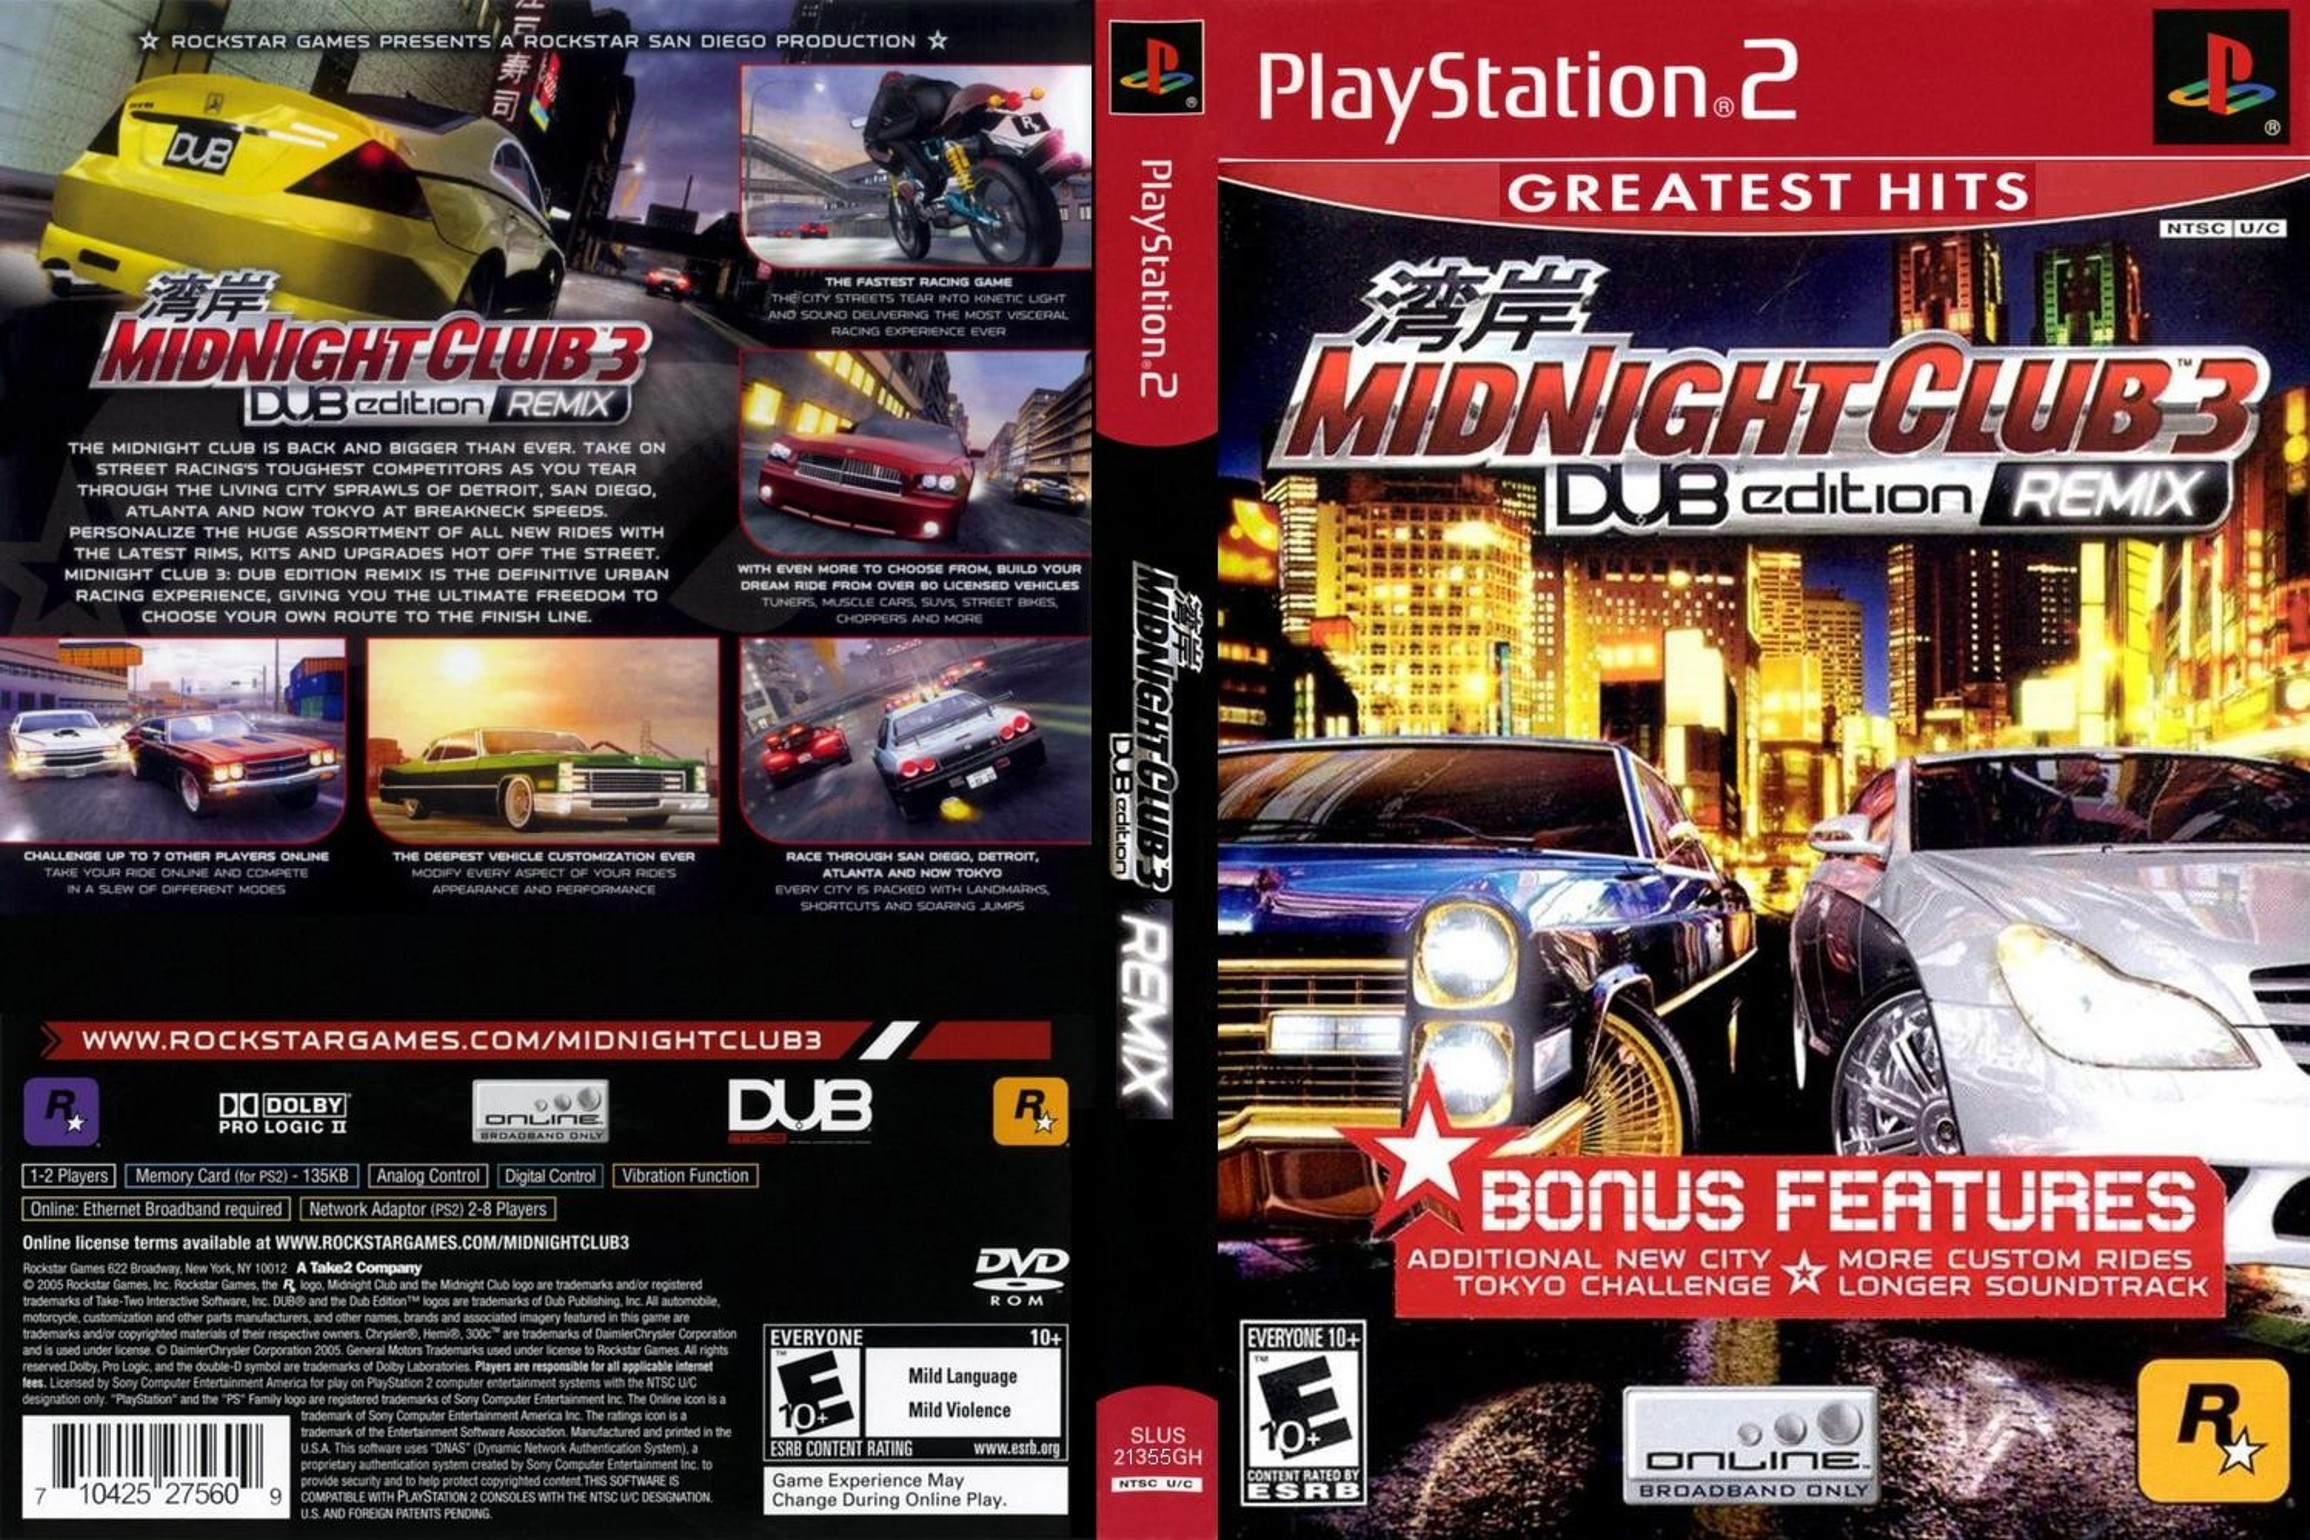 MidnightClub3DUBEdition